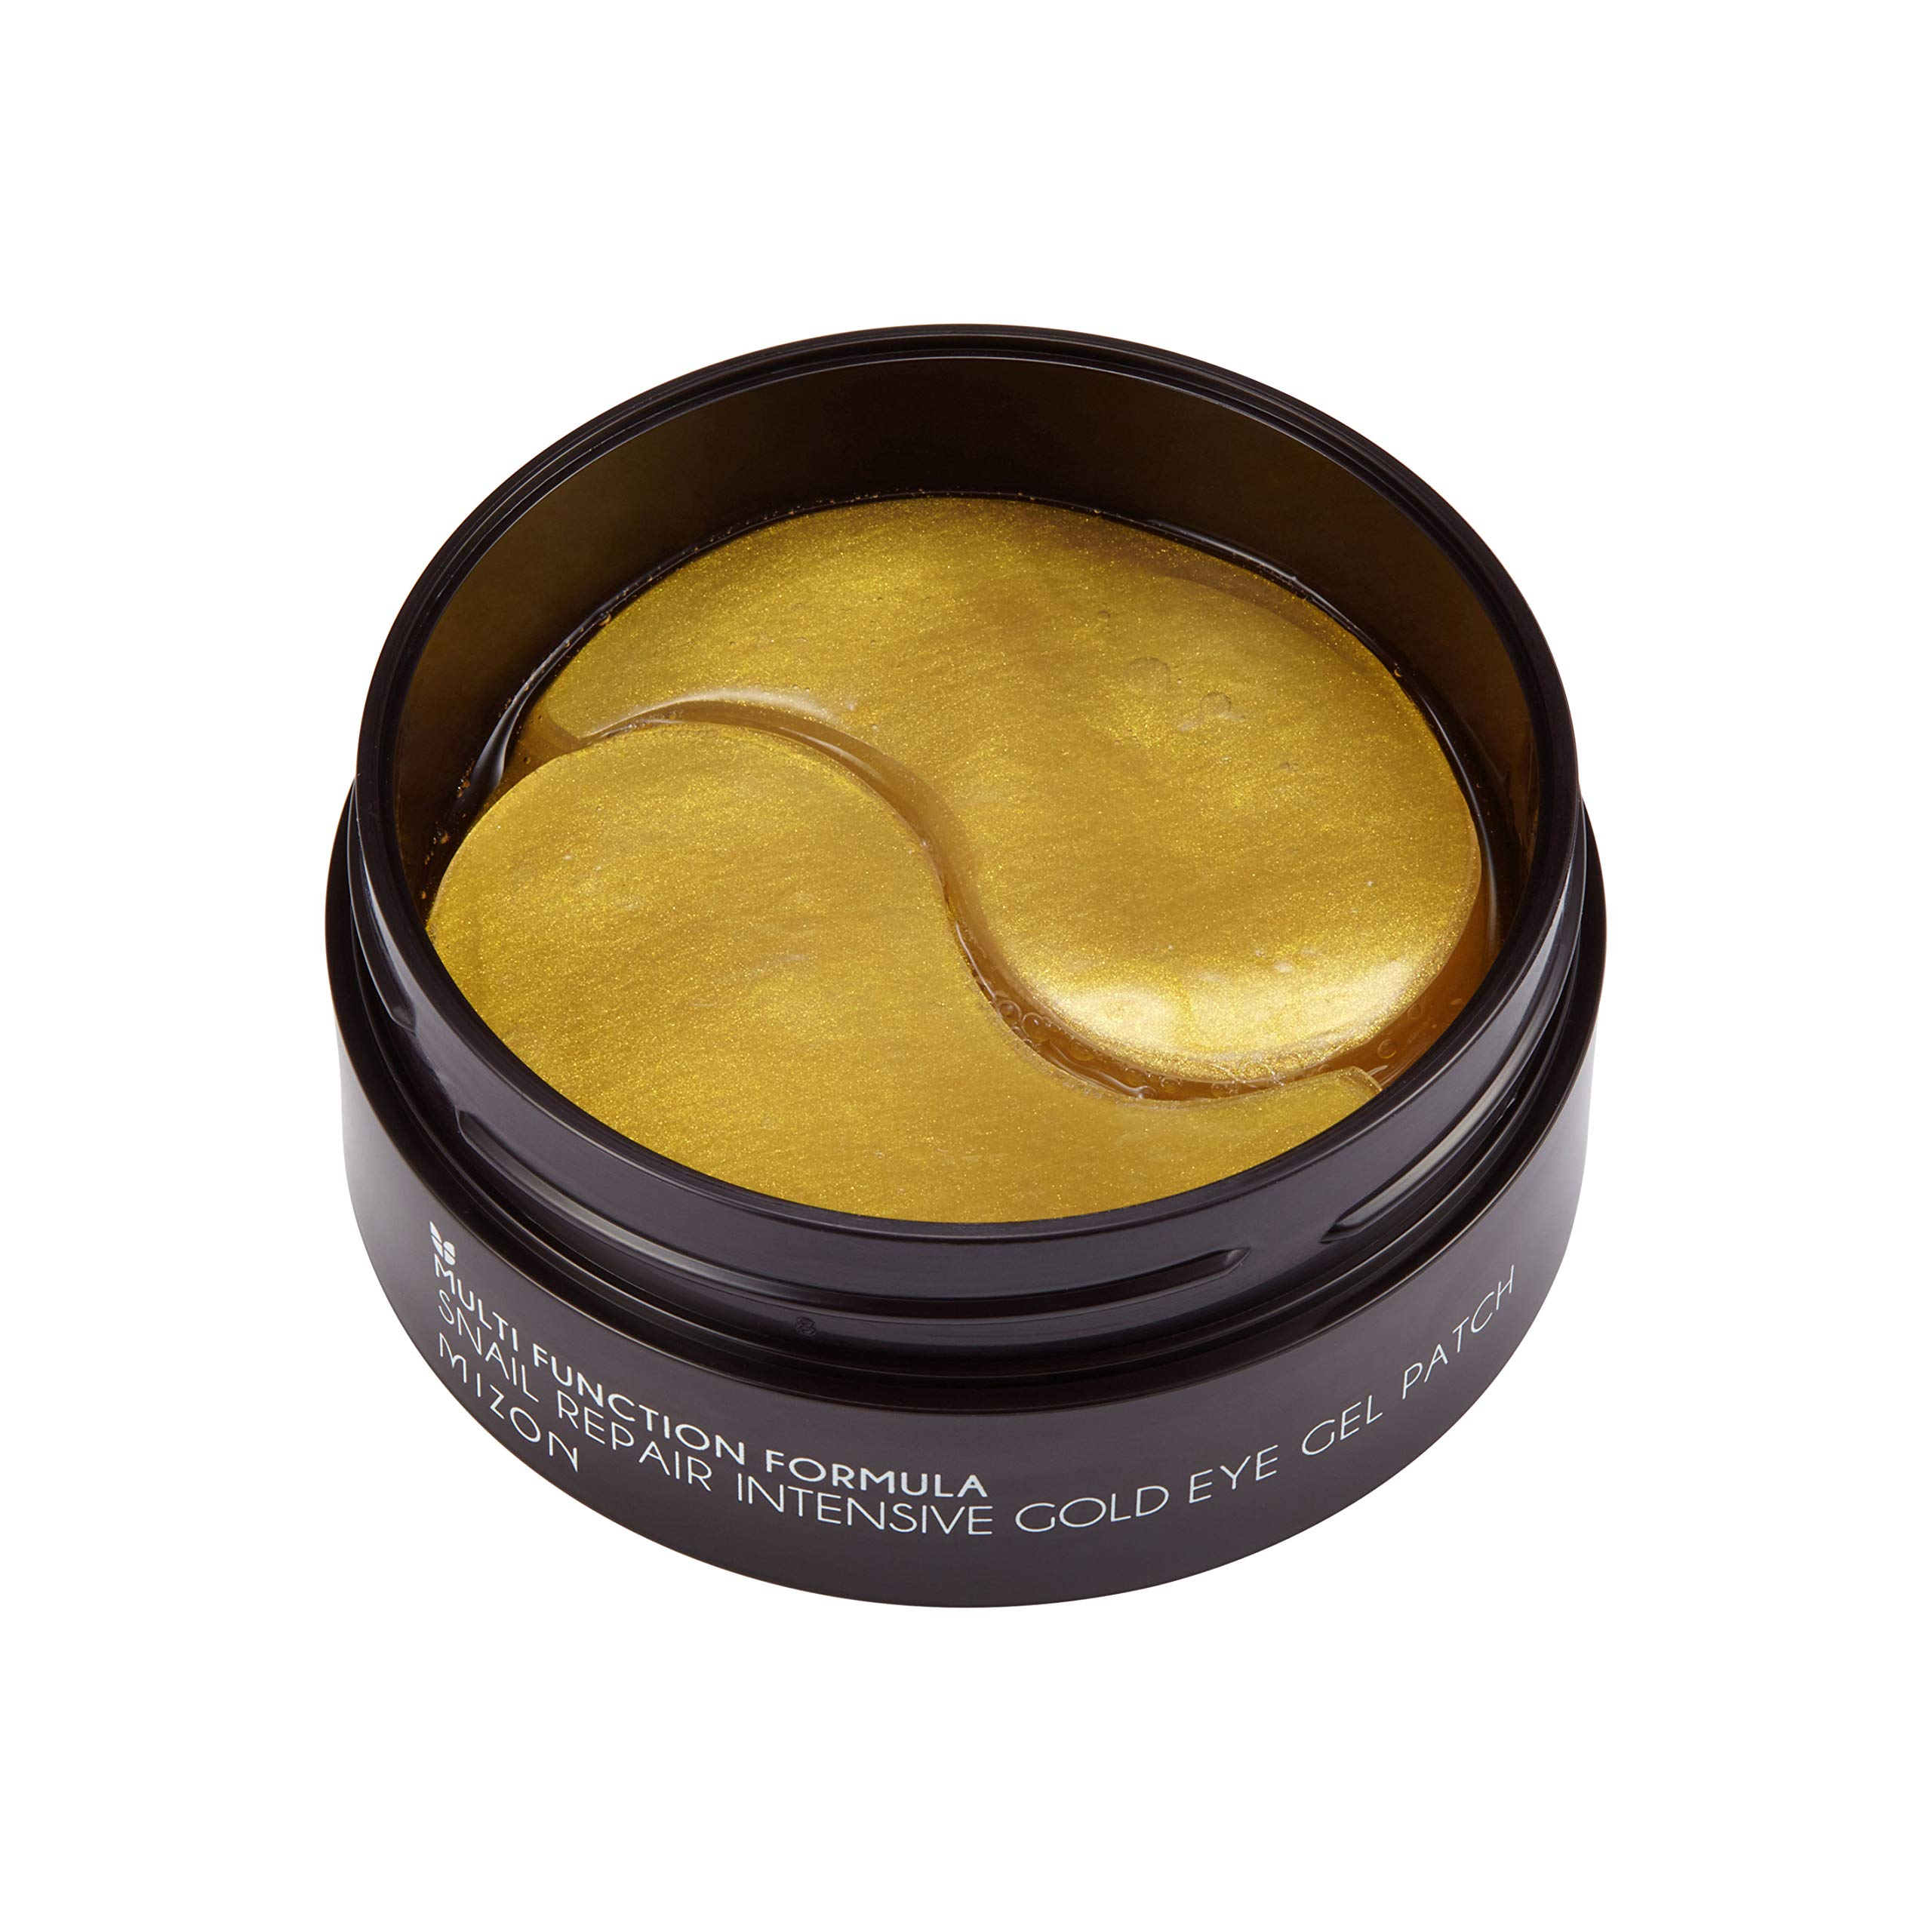 Mizon Snail Repair Intensive Gold Eye Gel Patch (60ea) Eye Treatment Mask Reduces Wrinkles and Puffiness, Lightens Dark Circles, 24k Gold and Snail Slime Extract, Intensive Care, Moisturizing Hydrogel by MIZON